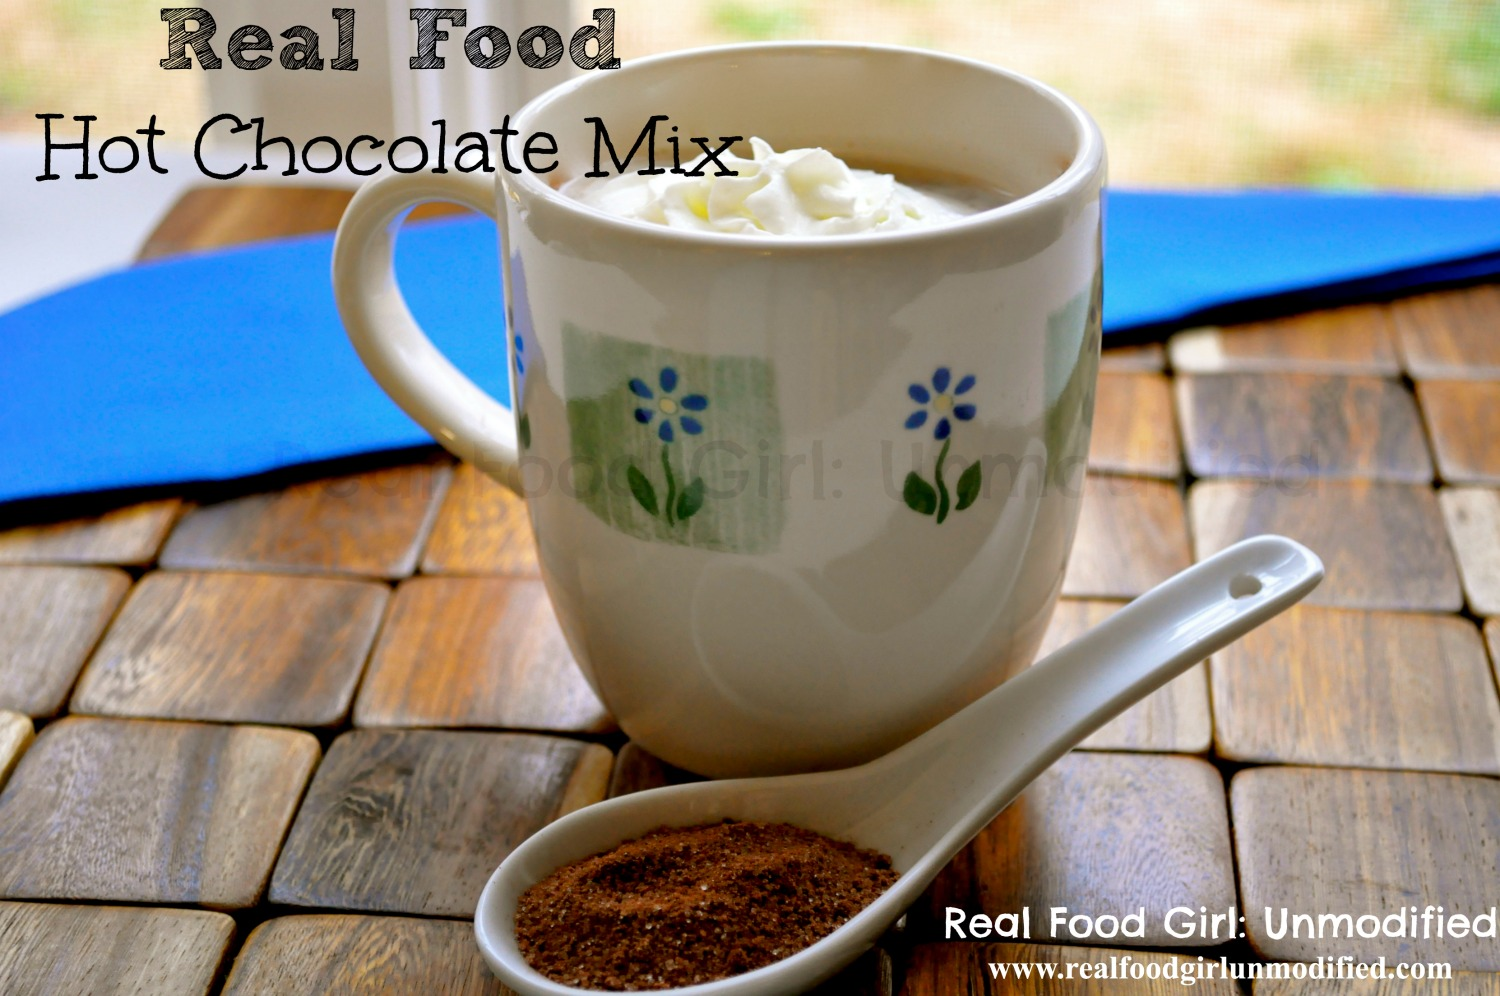 Real Food Hot Cocoa Mix by Real Food Girl: Unmodified